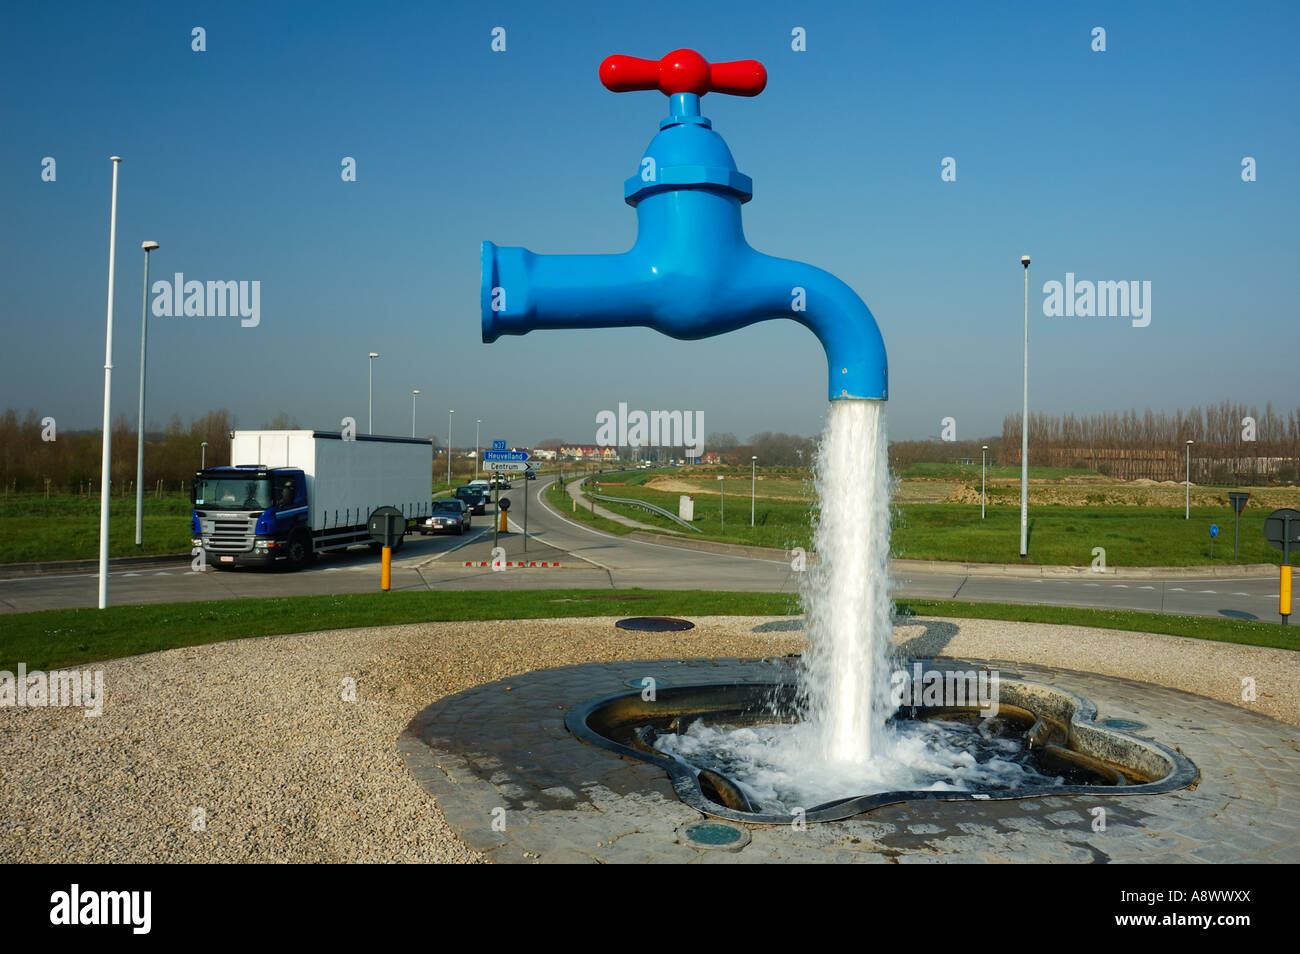 Ypres Floats Water Faucet